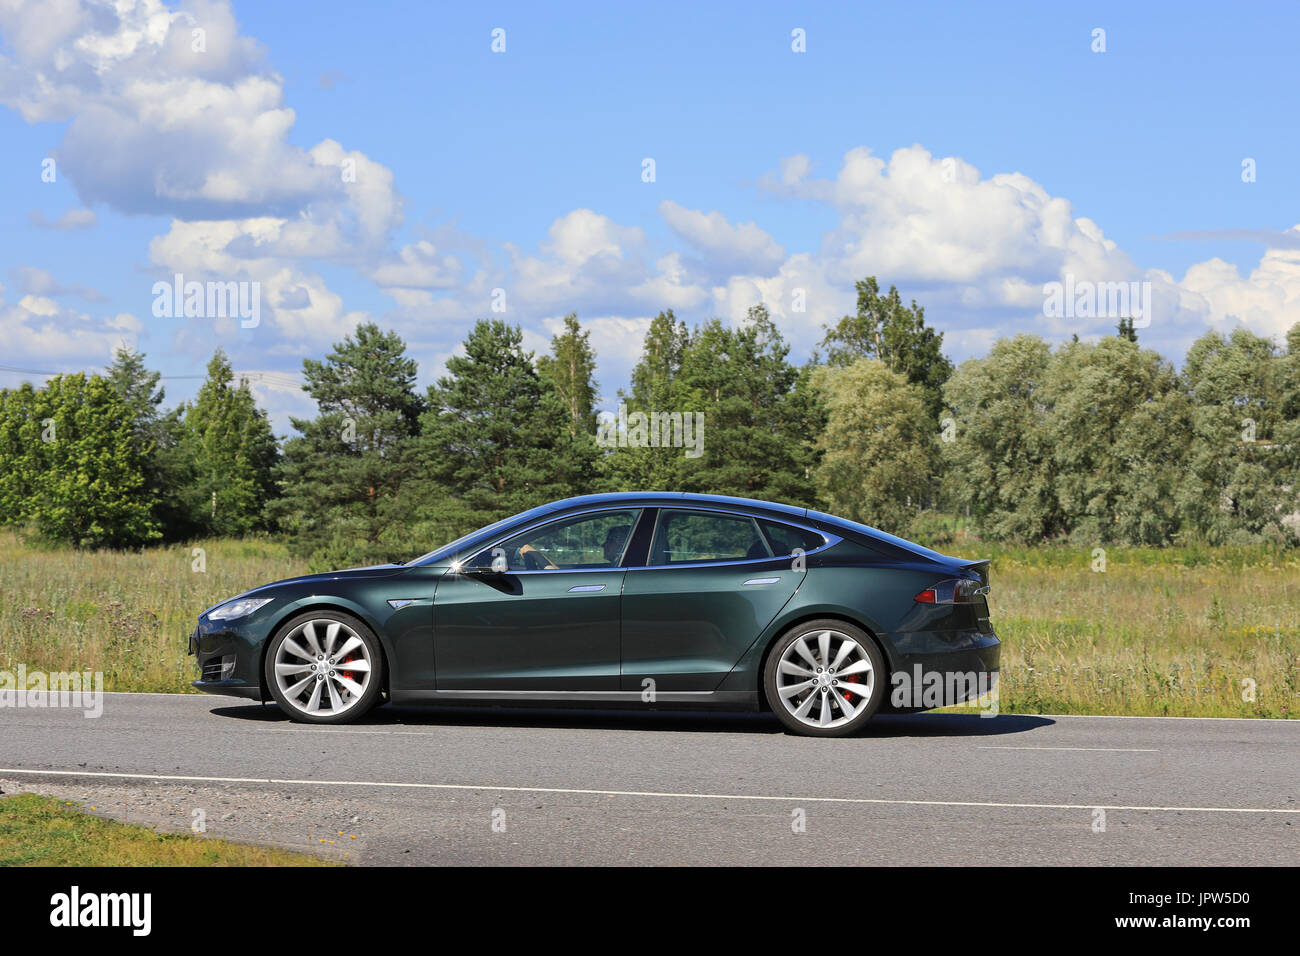 PAIMIO, FINLAND - JULY 29, 2017: Metallic green Tesla Model S moves along rural road at summer with forest and beautiful sky on the background. - Stock Image